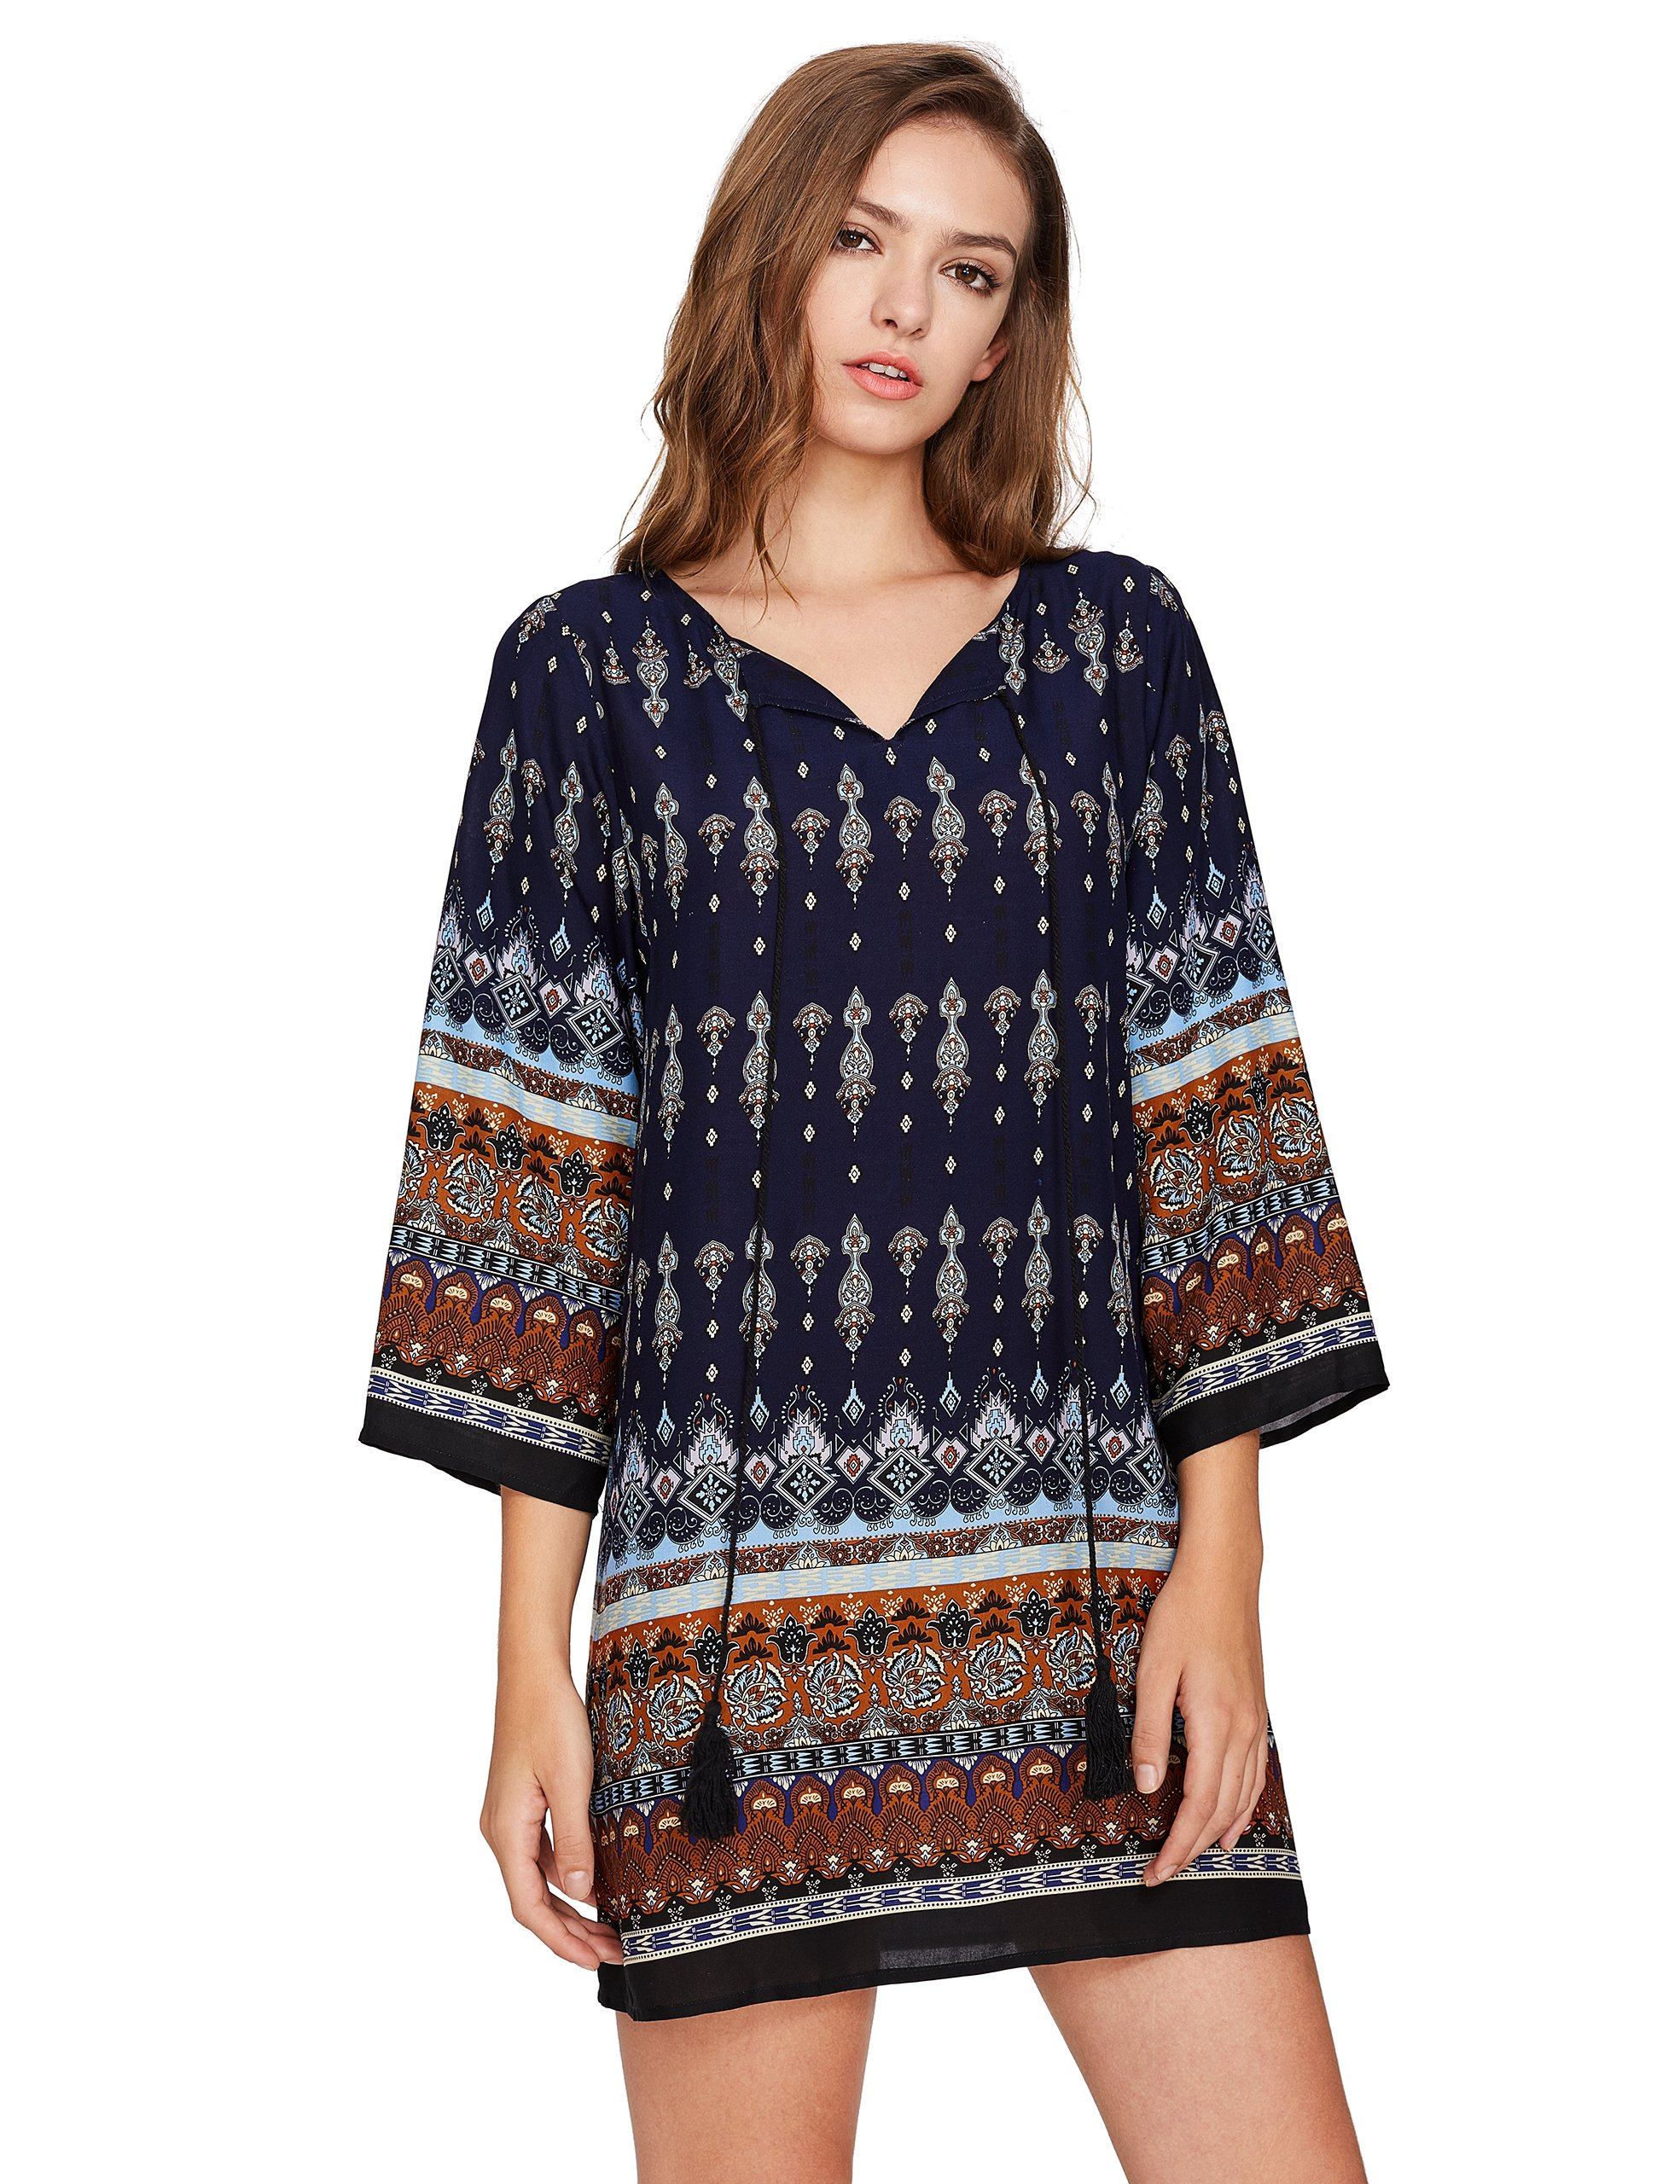 ROMWE Women's Boho Bohemian Tribal Print Summer Beach Dress Navy S by Romwe (Image #6)